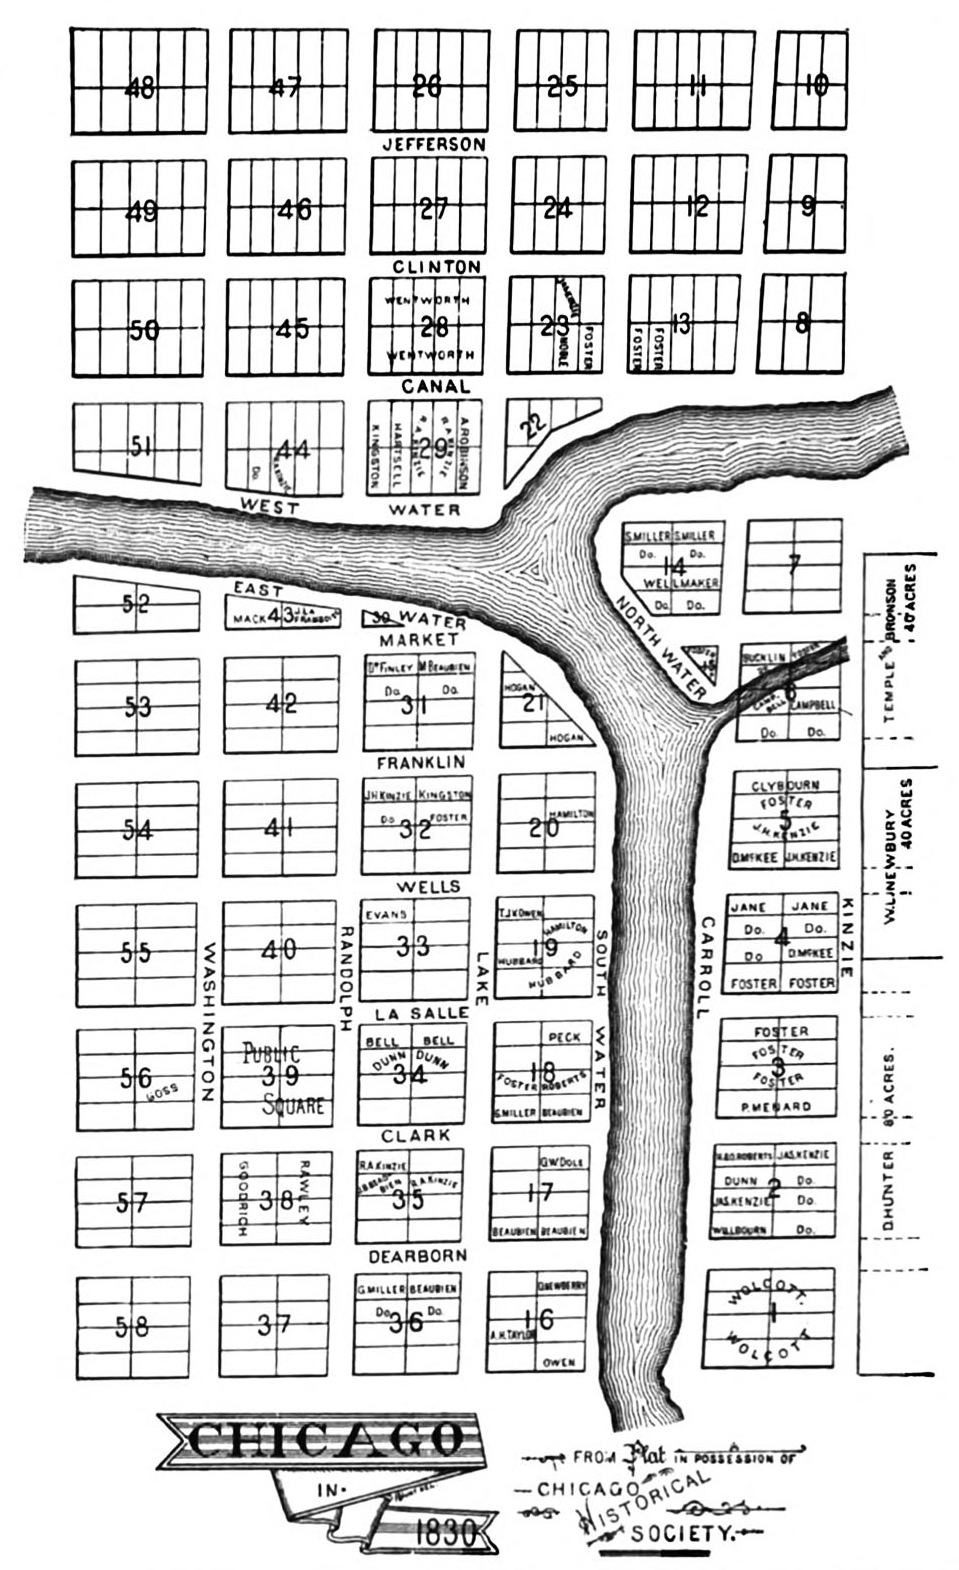 James Thompson's plat map of Chicago, 1830. (Wikimedia Commons)